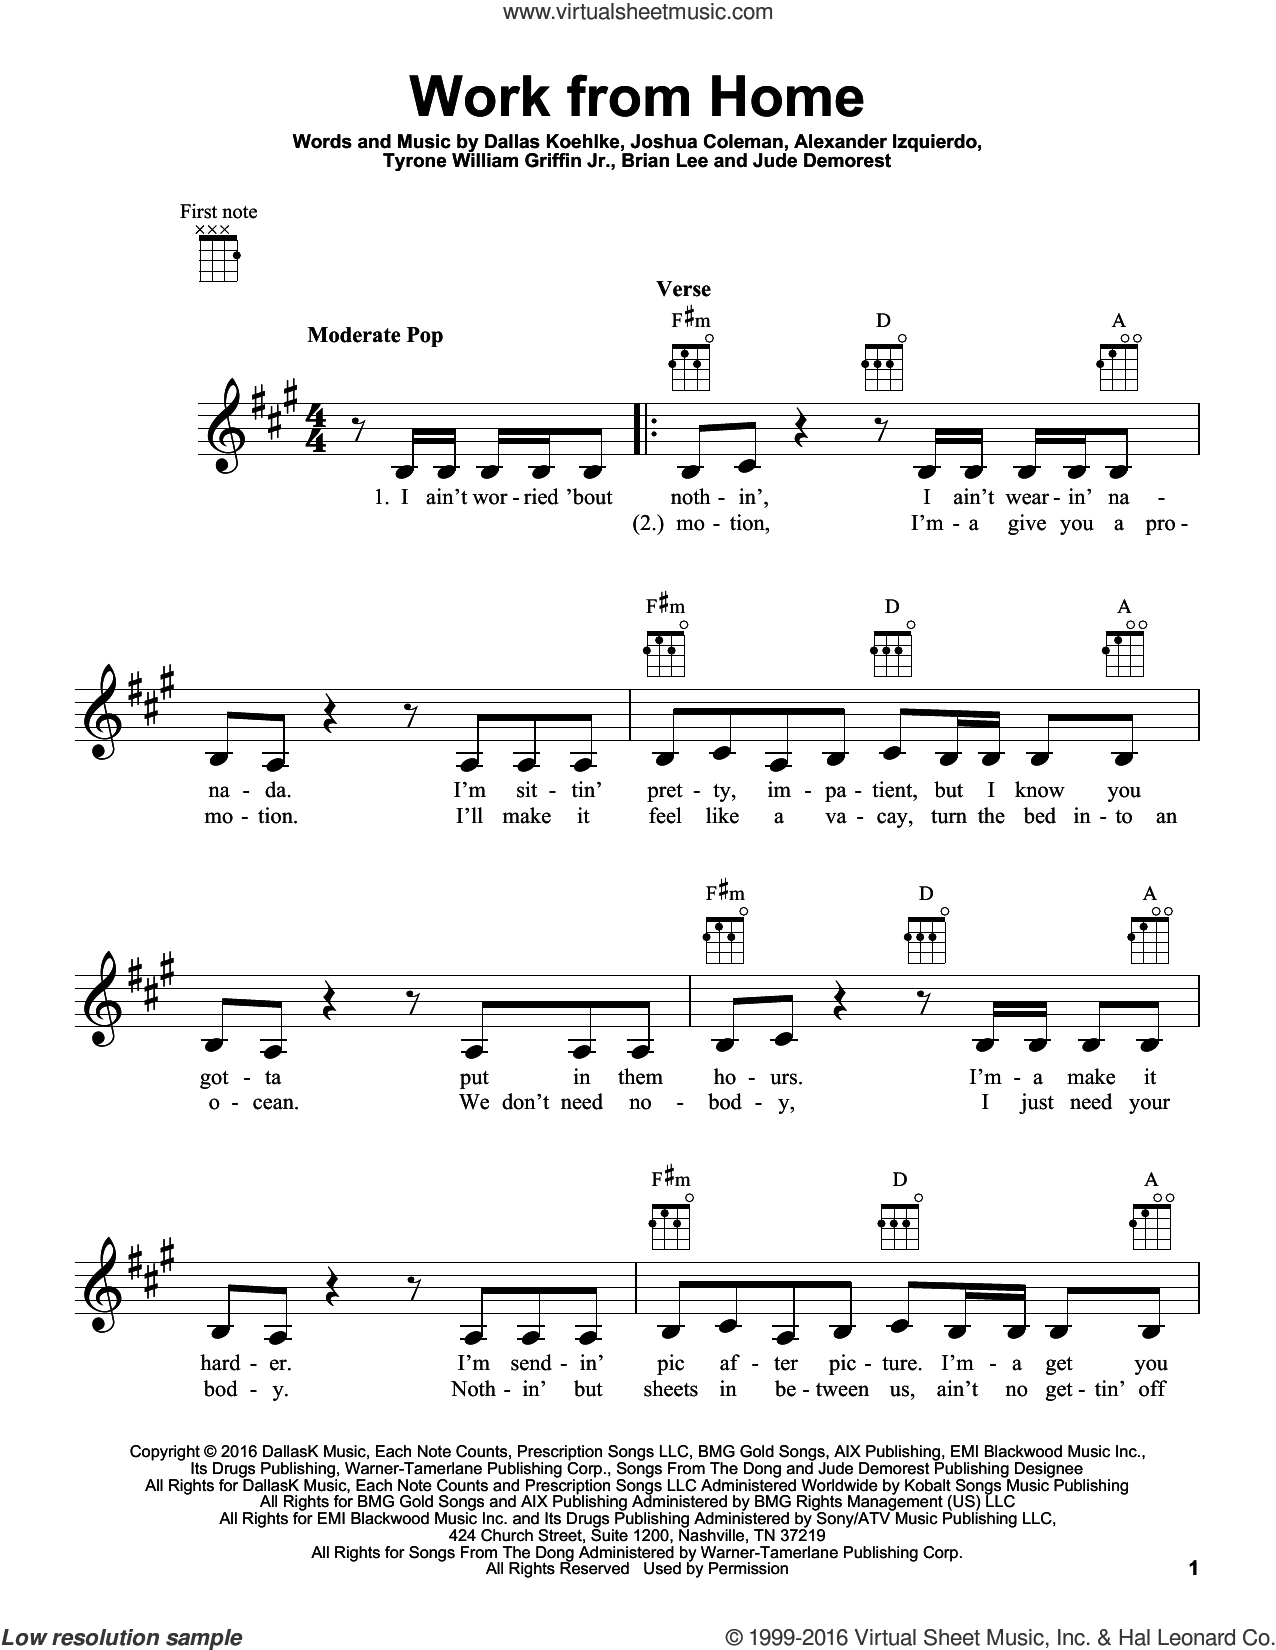 Work From Home sheet music for ukulele by Fifth Harmony feat. Ty Dolla $ign, Alexander Izquierdo, Brian Lee and Jude Demorest. Score Image Preview.